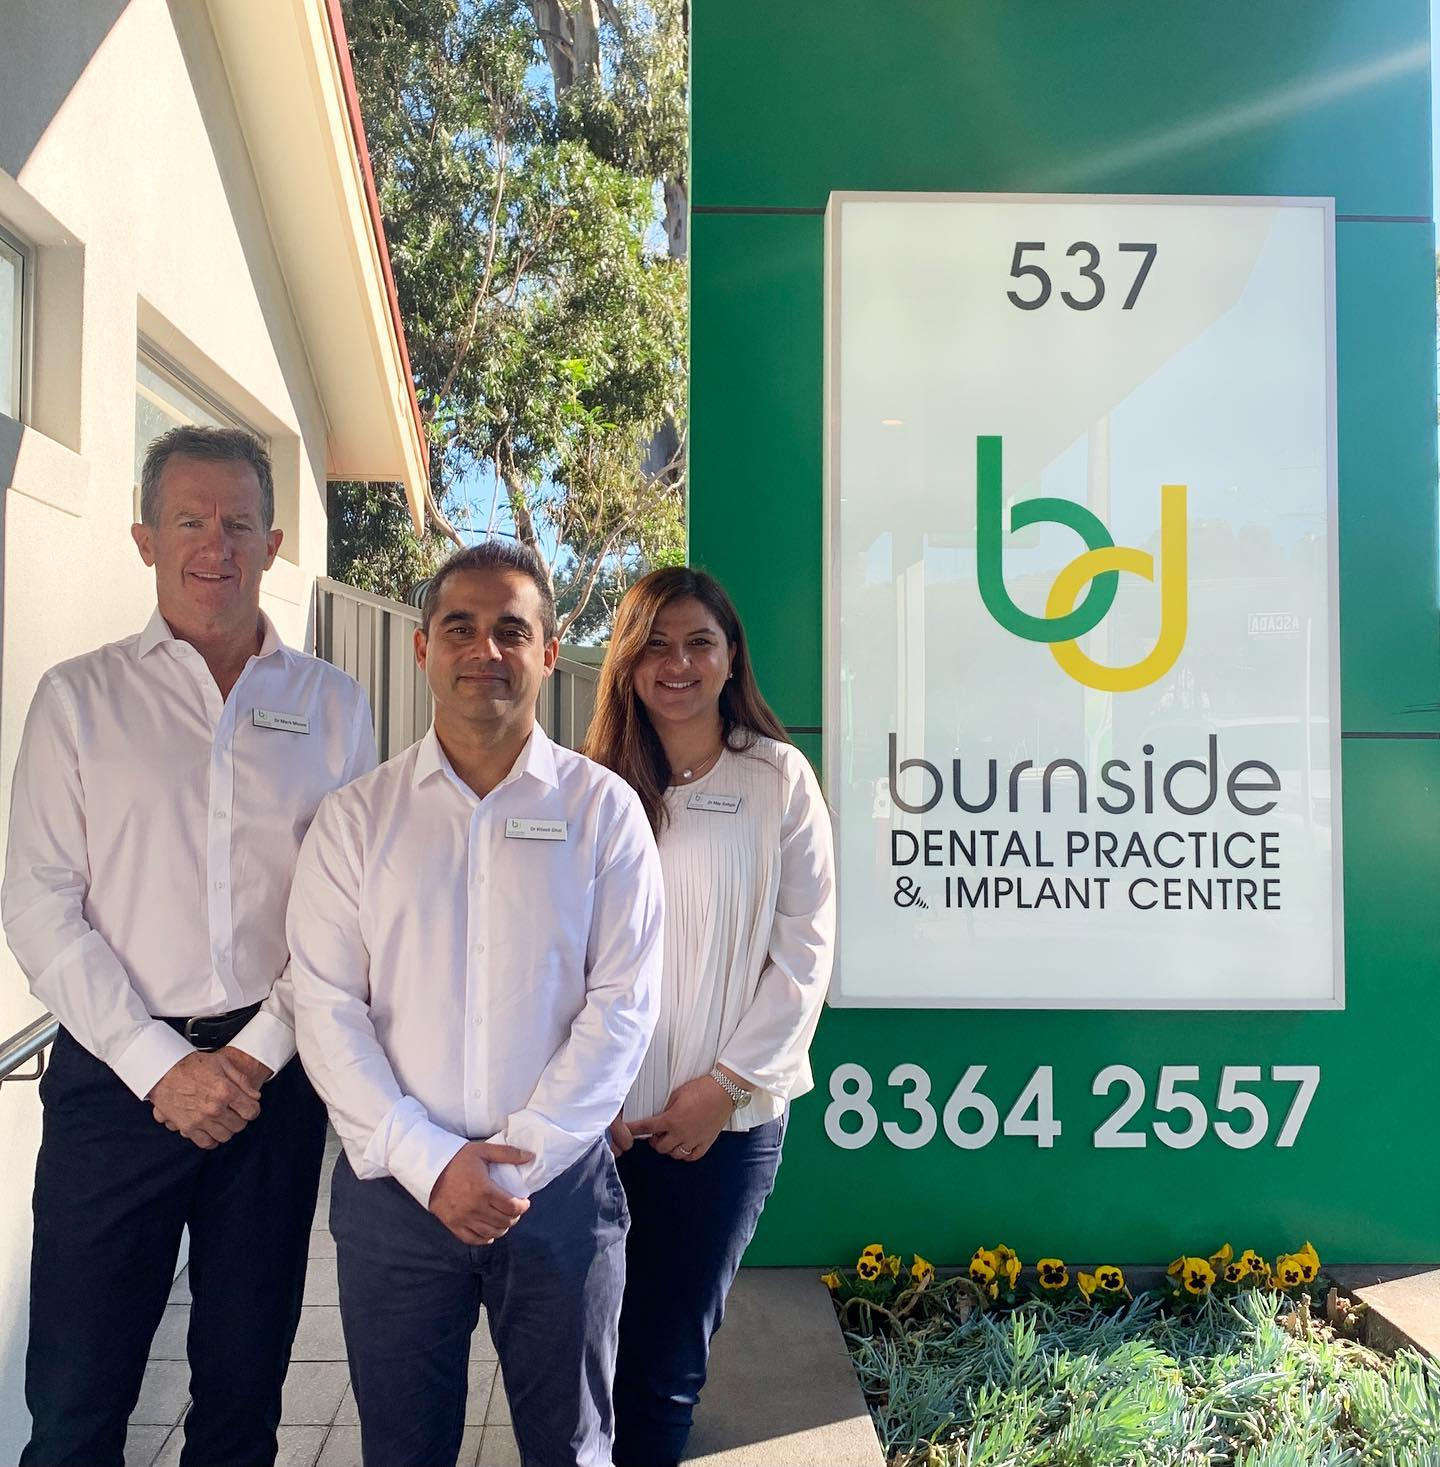 Our trusted dentist in Adelaide